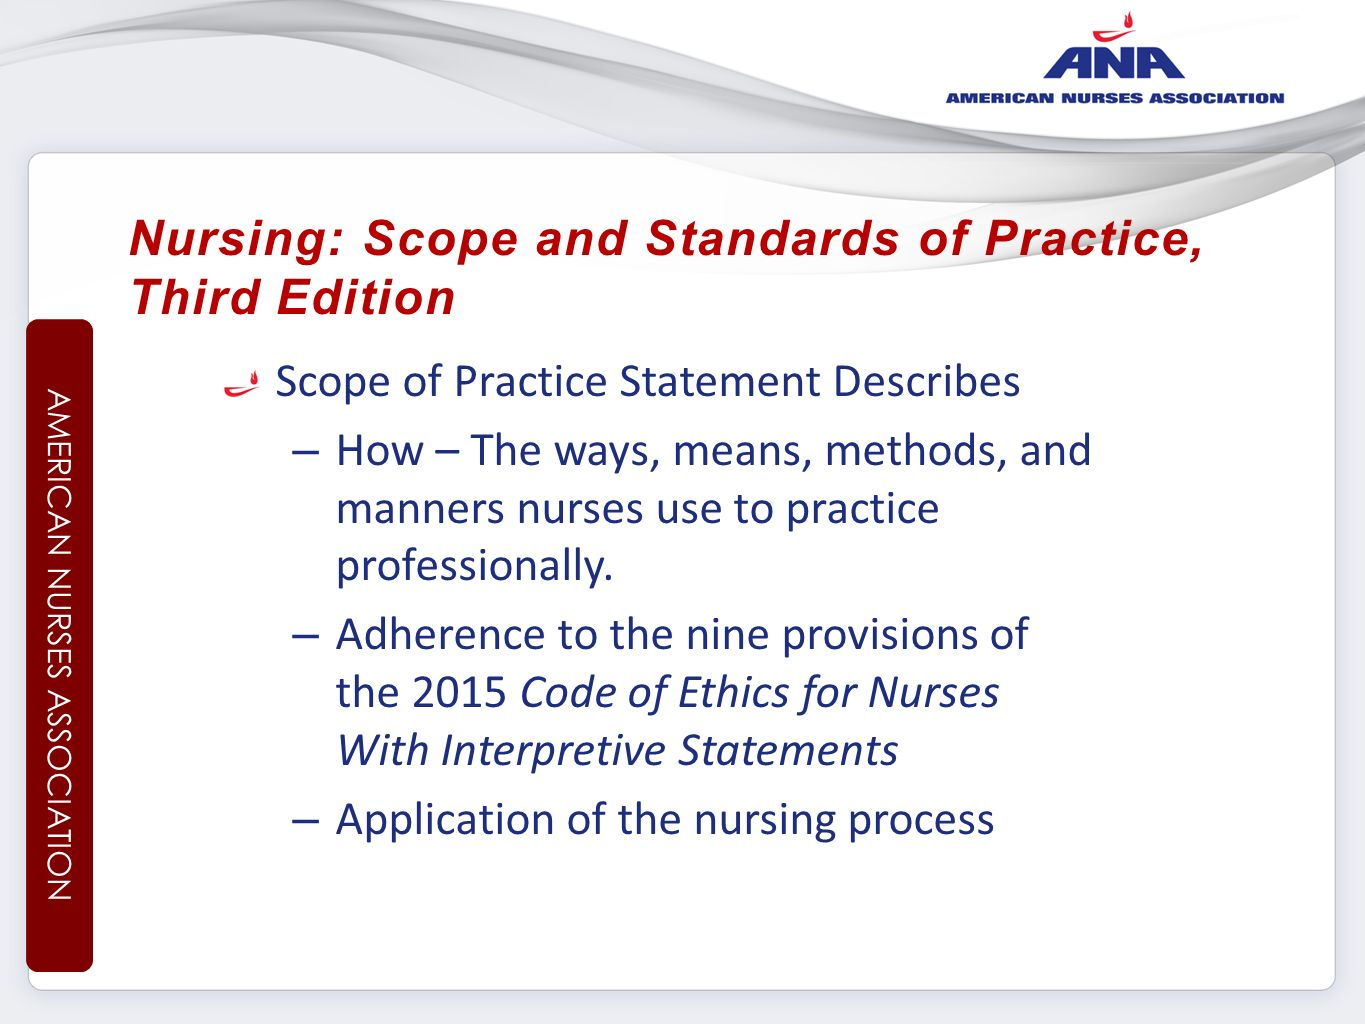 The Code of Ethics for Nurses